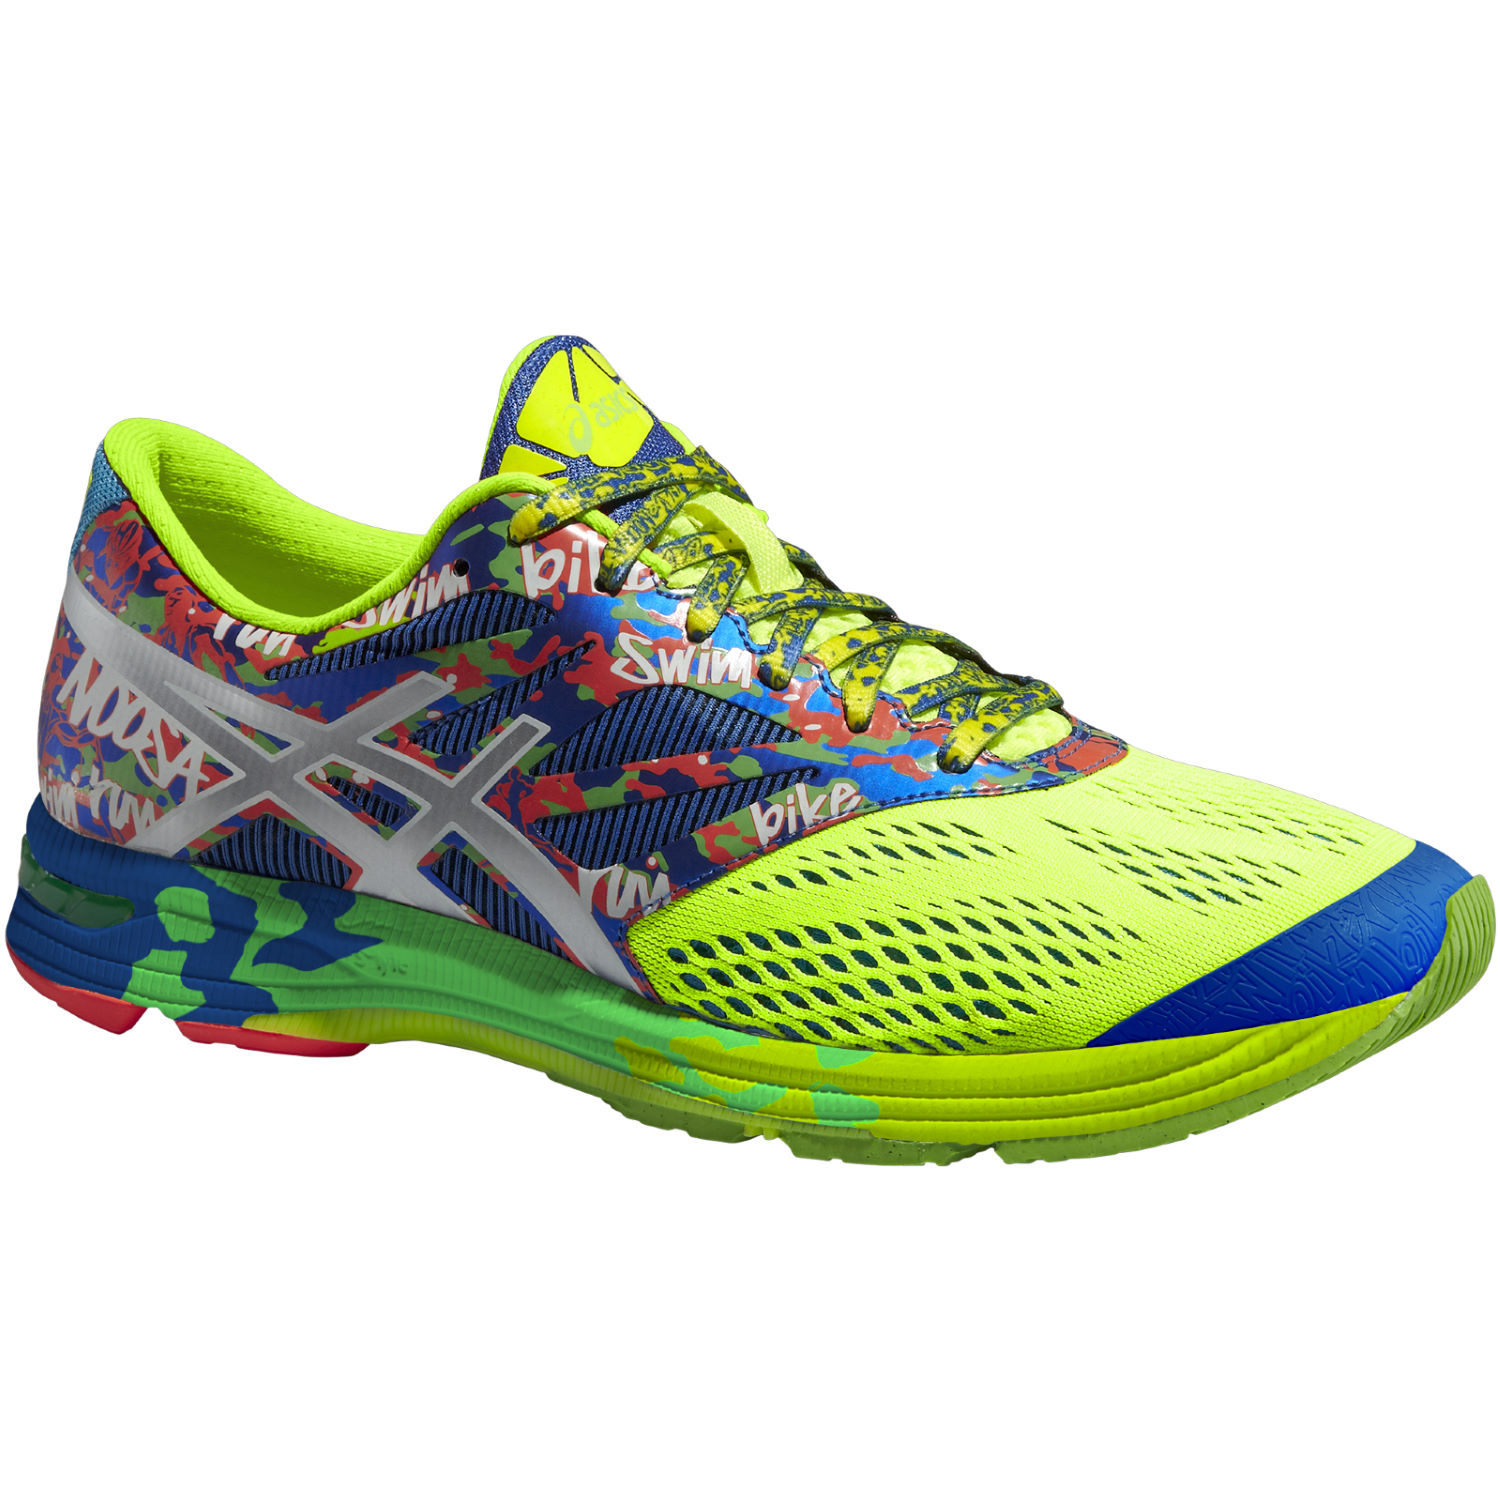 wiggle asics gel noosa tri 10 shoes ss15 racing